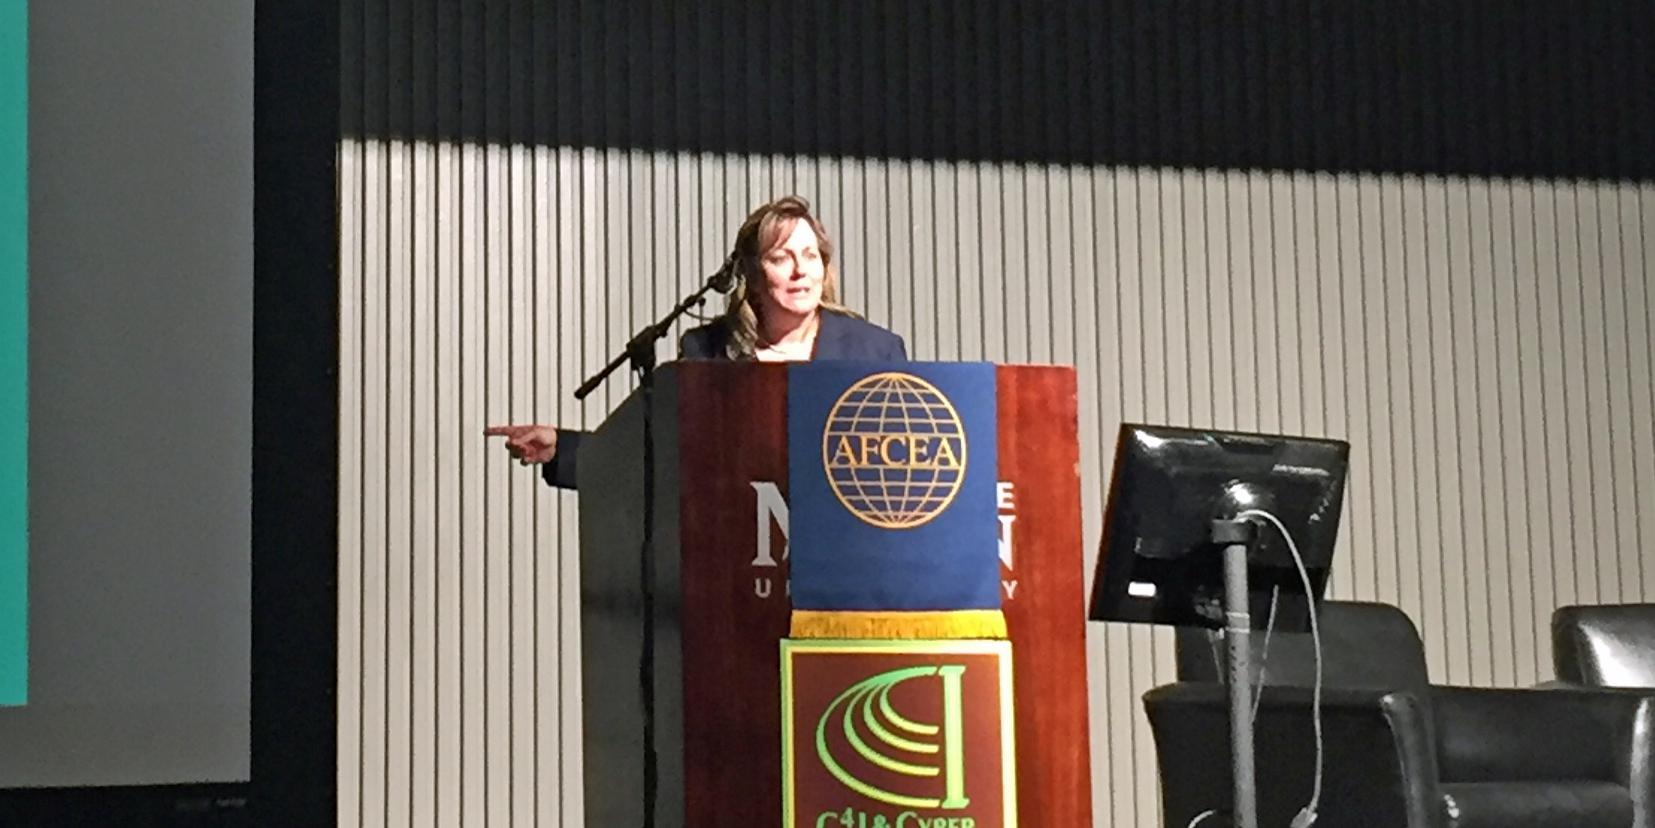 During her morning keynote, Stempfley stressed the importance of using analytics to create situational awareness in cybersecurity.